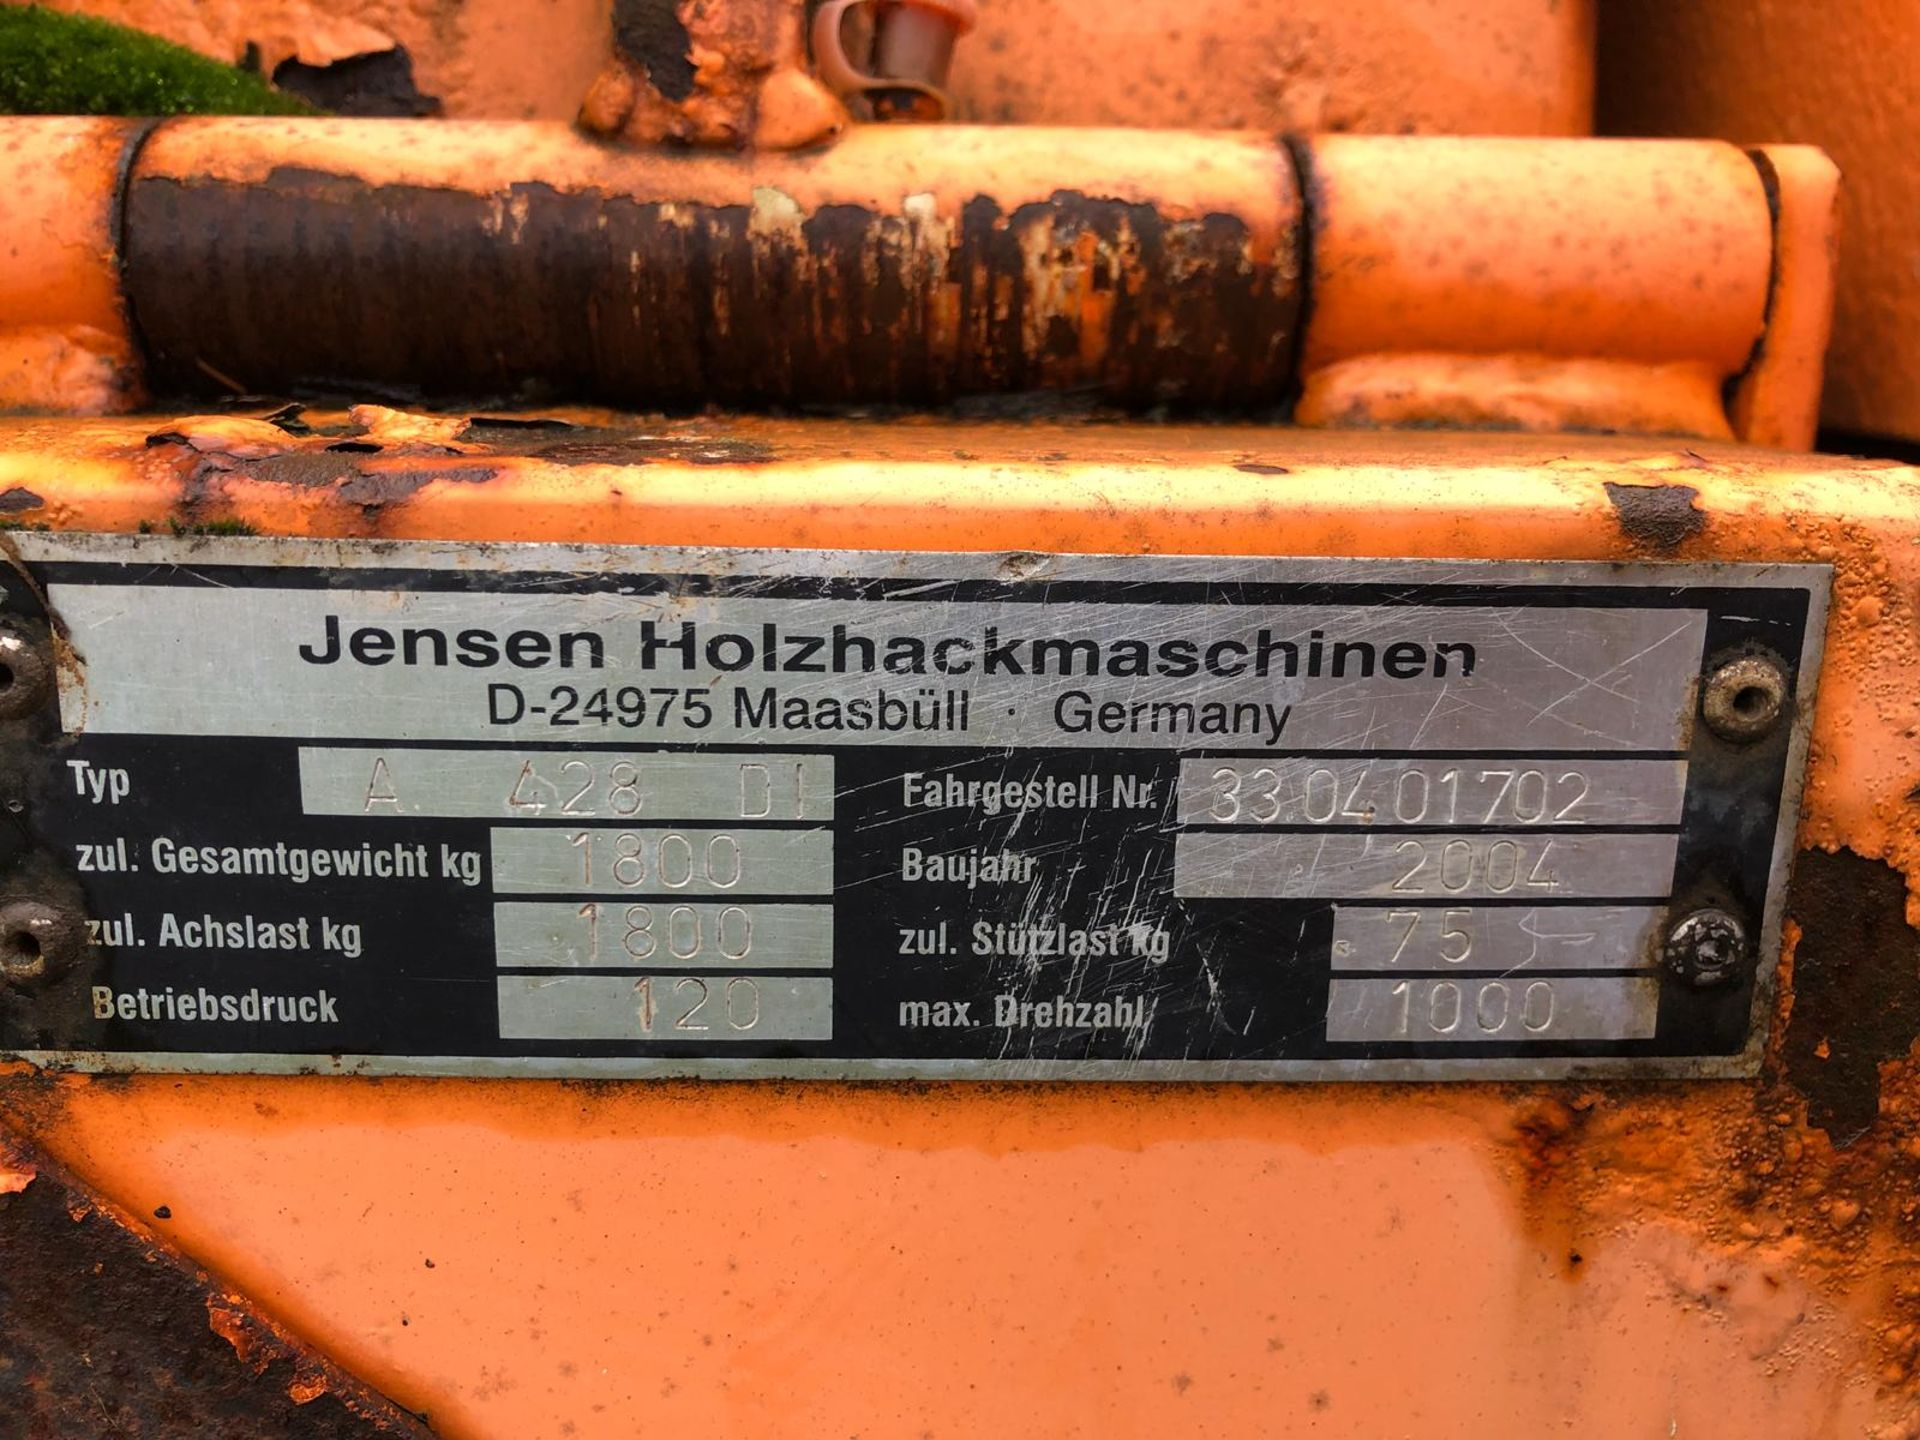 DS -QUALITY 2004 JENSEN DIESEL TURNTABLE CHIPPER, QUALITY TRAILER - Image 7 of 8